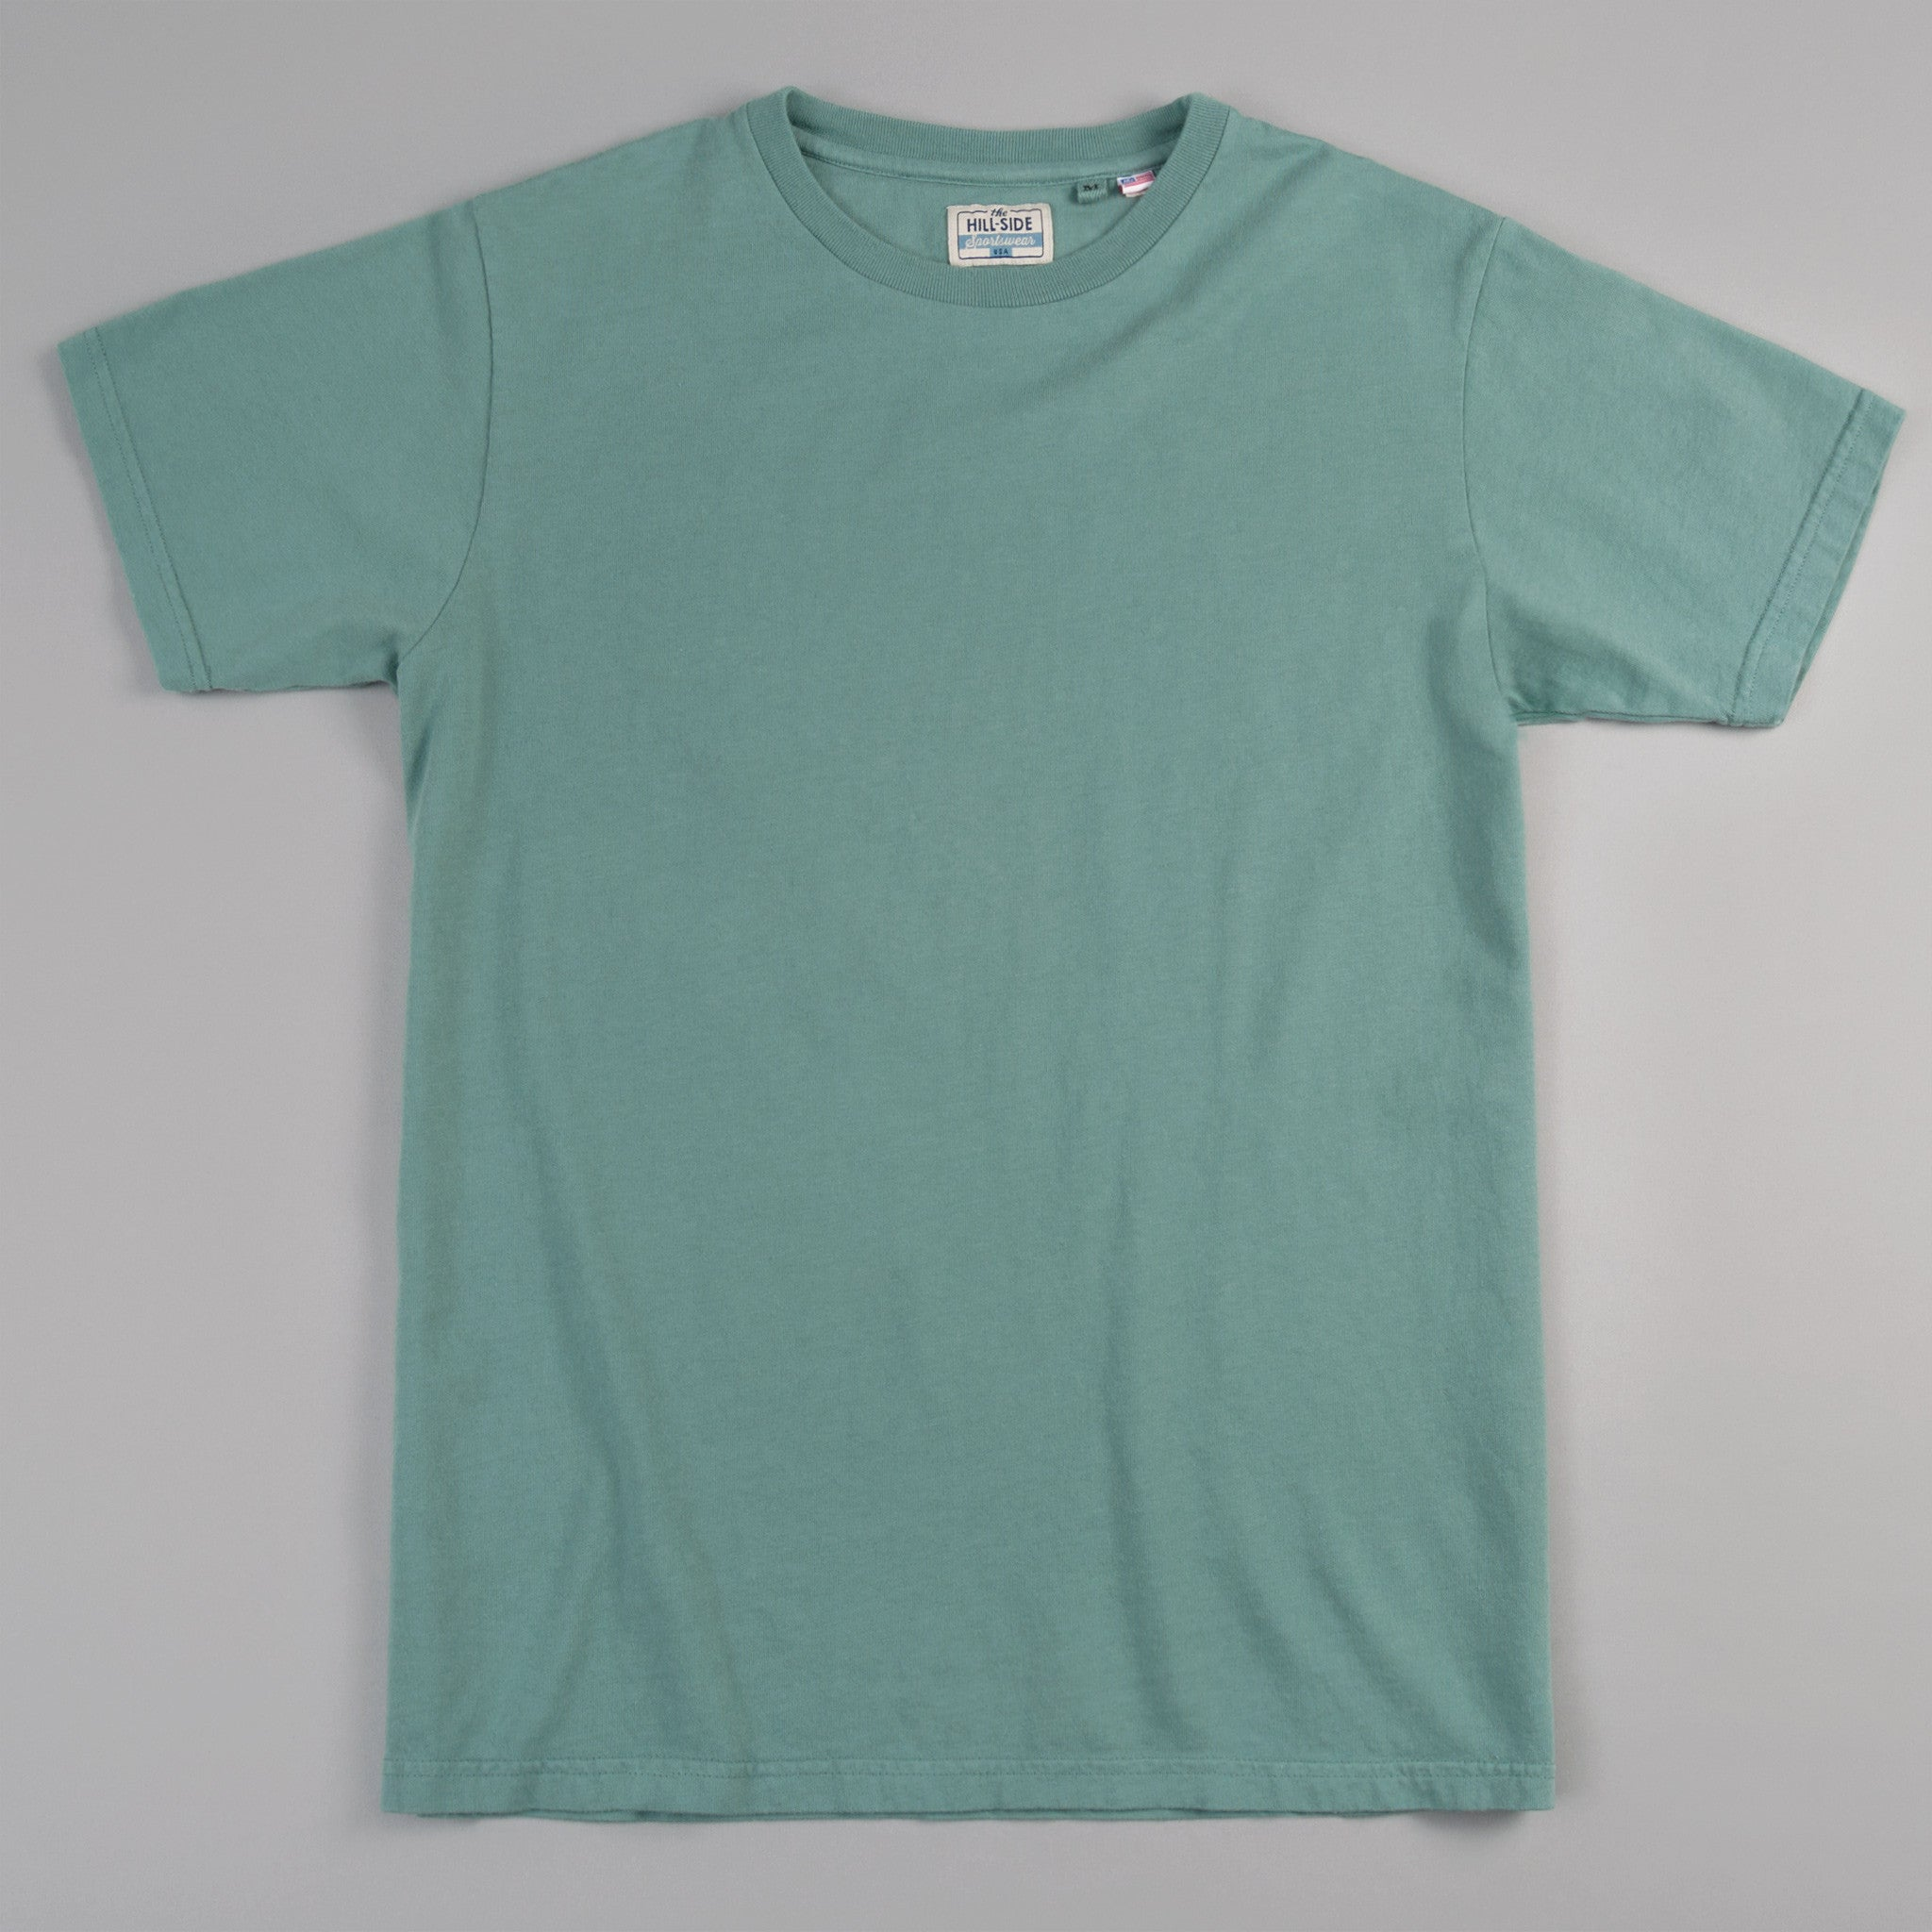 The Hill-Side - T-Shirt, Seafoam - TS1-0006